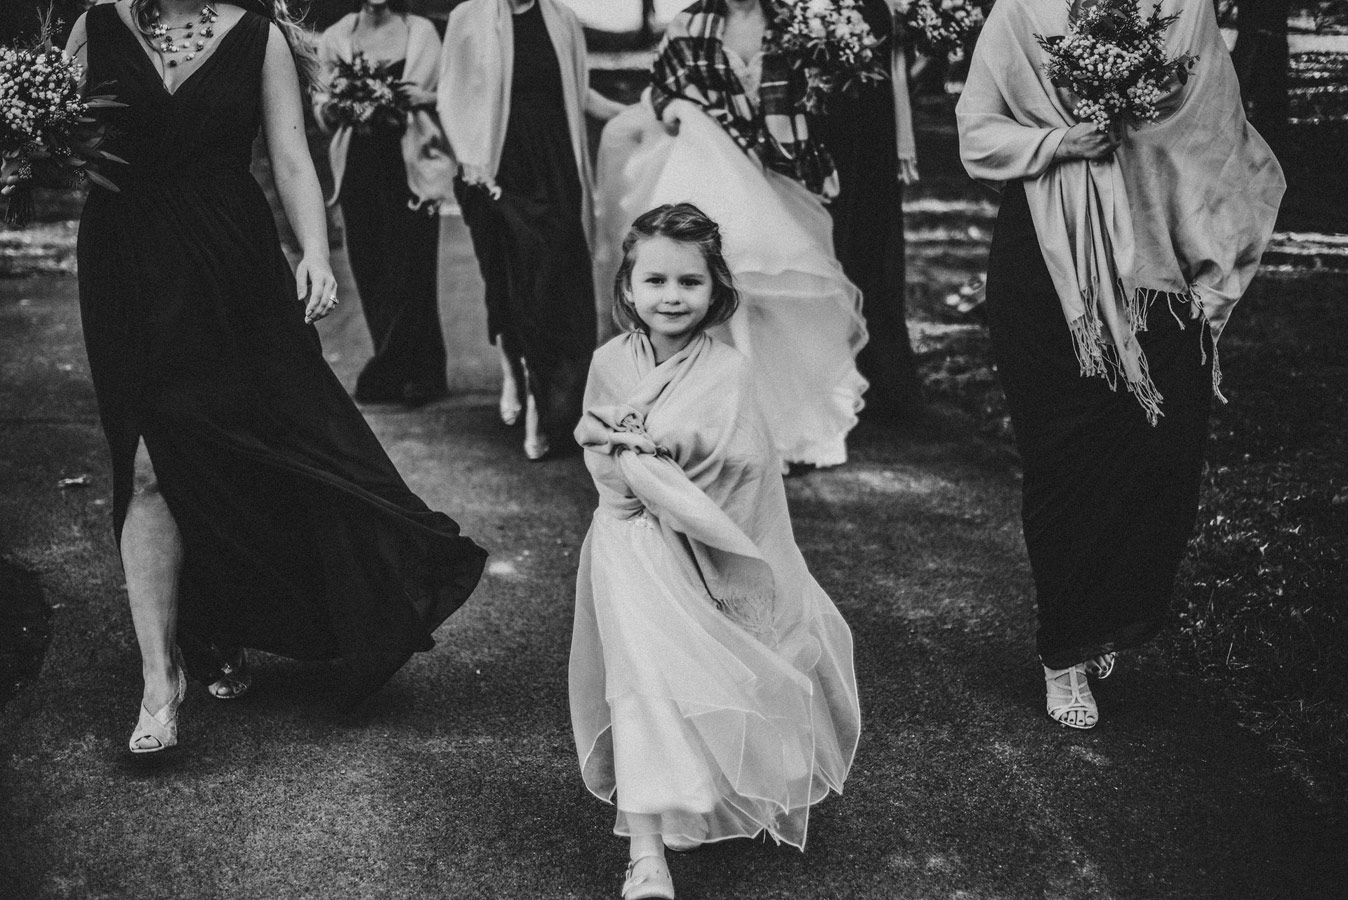 © Gabrielle Van Wyck - White Sails Photography, Luray, VA, United States, 2st place in category Professional : Wedding Party, Rangefinder Wedding Contest 2017 Winners